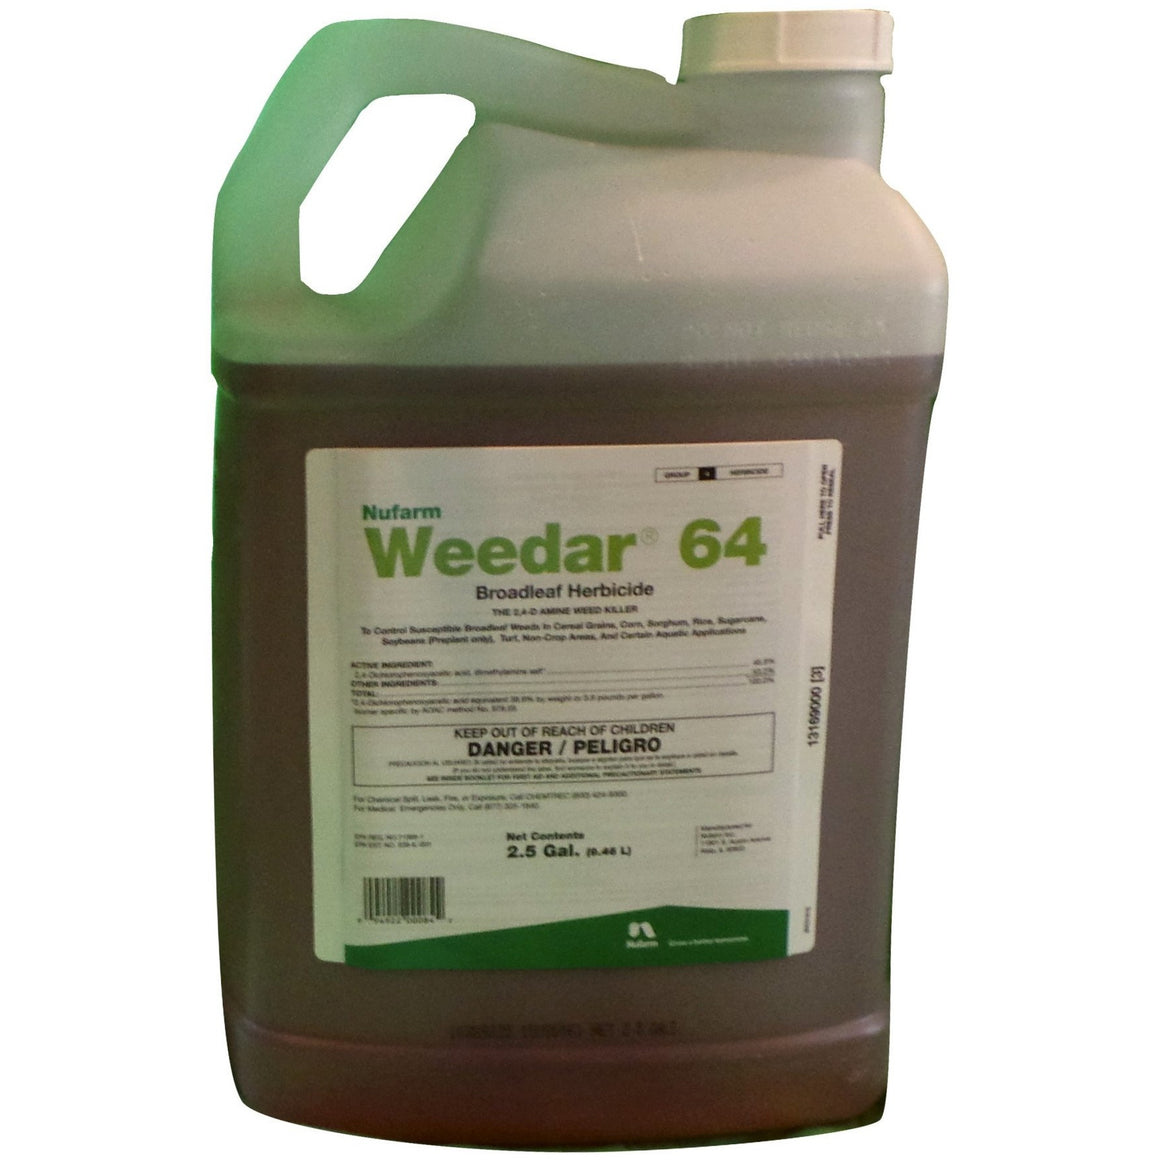 Weedar 64 Broadleaf 2,4-D Herbicide - 1 Gallon